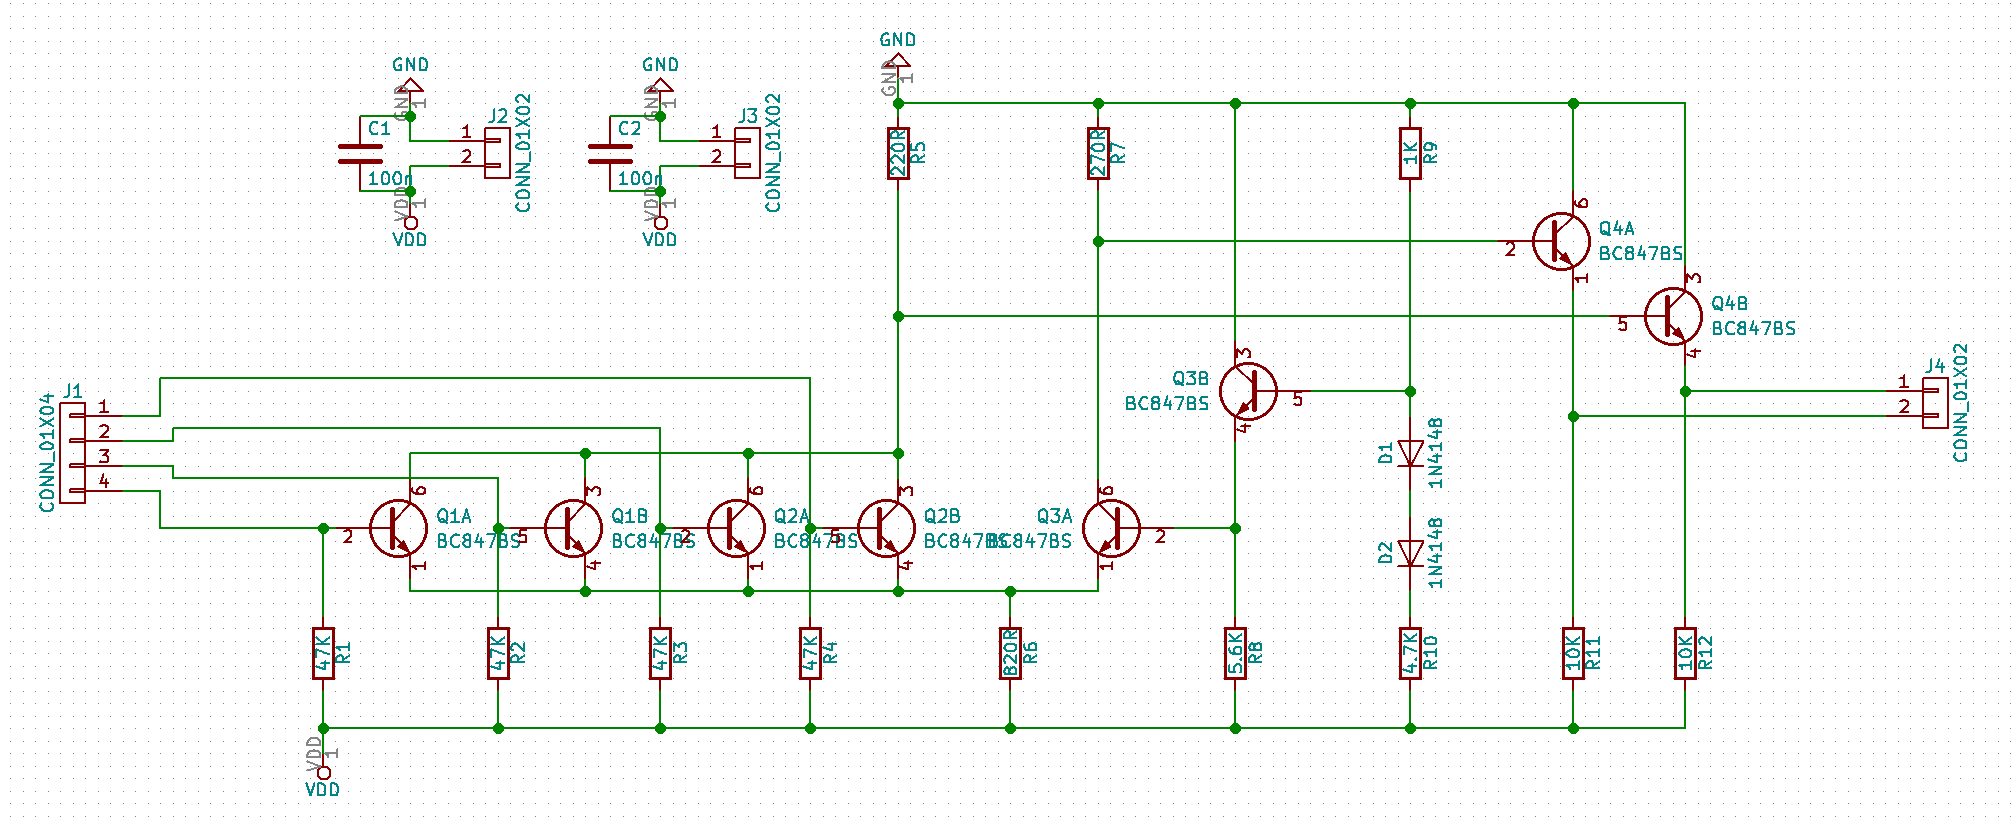 ECL logic ramblings - jaeblog jaeblog on and gate schematic, molecular logic gate, differential amplifier schematic, nand logic, and gate, counter schematic, bandpass filter schematic, xor cmos schematic, xnor gate, full adder schematic, shift register schematic, op-amp schematic, standard cell, or gate schematic, toffoli gate, logic gate schematic, nor logic, series circuit schematic, xnor gate schematic, xor gate, logic gate, xor gate schematic, or gate, nand gate, inverter schematic, sheffer stroke, gate equivalent, not gate schematic,